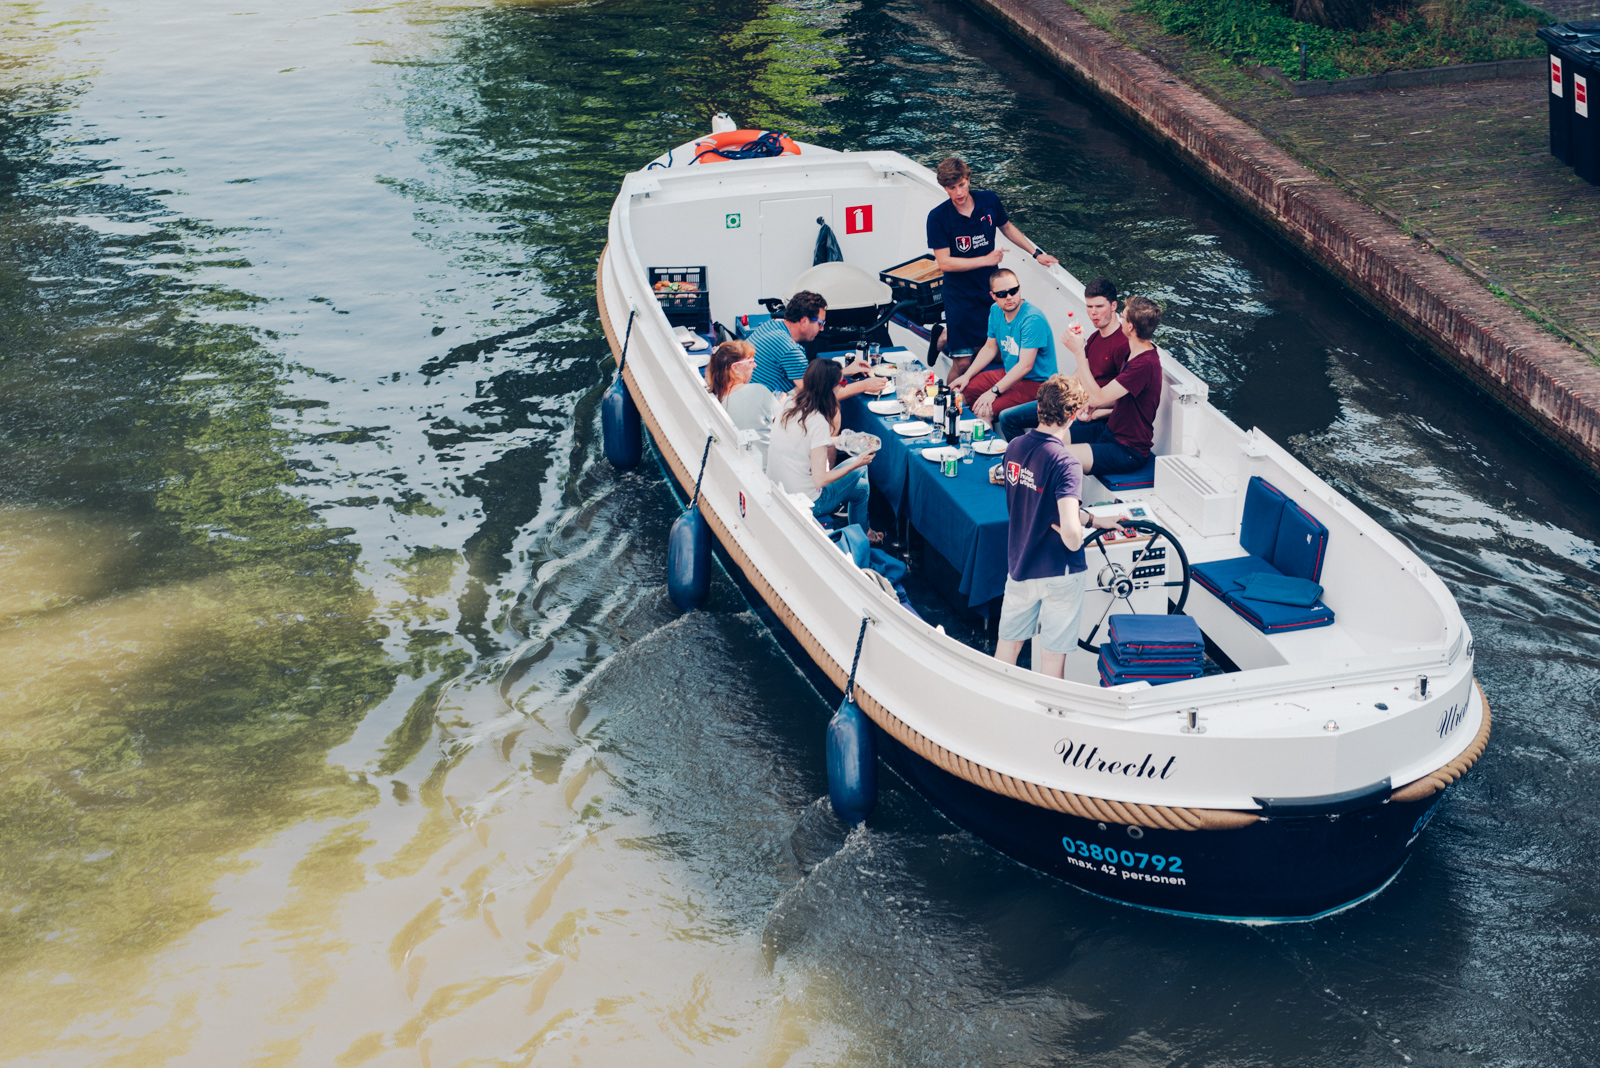 barbecue varen utrecht